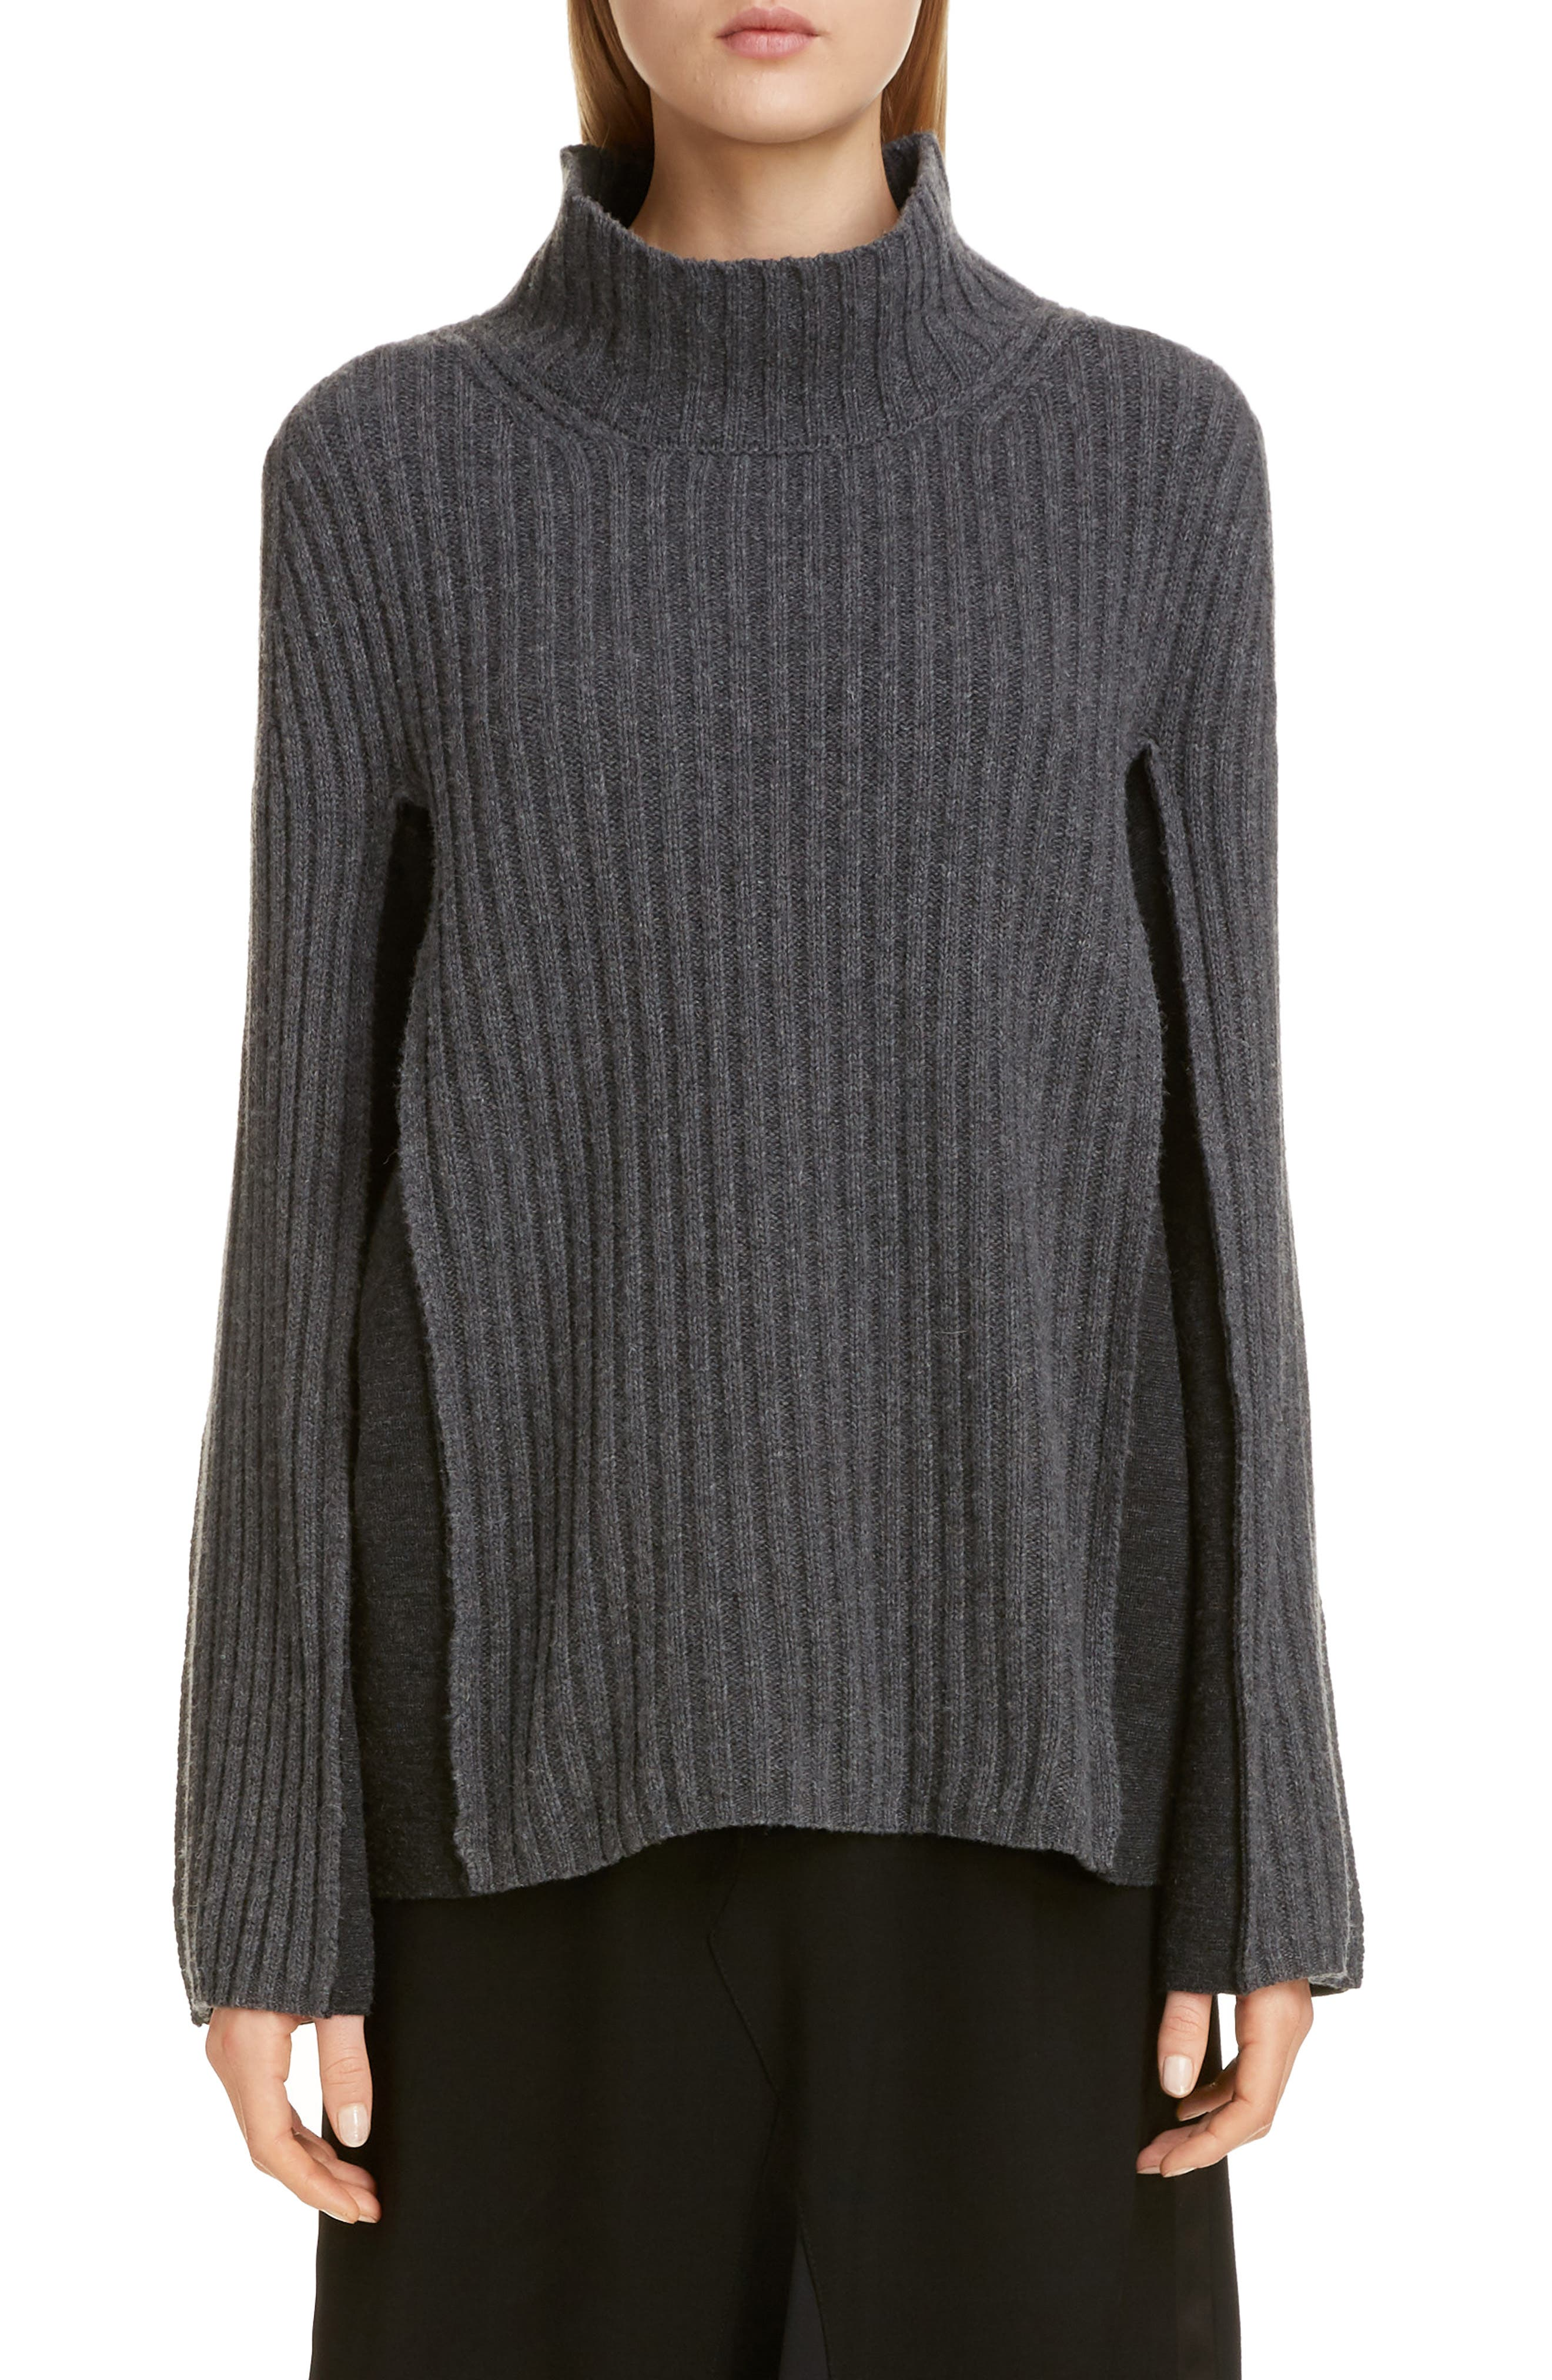 Maison Margiela Sweaters Ribbed Bicolor Wool Blend Sweater